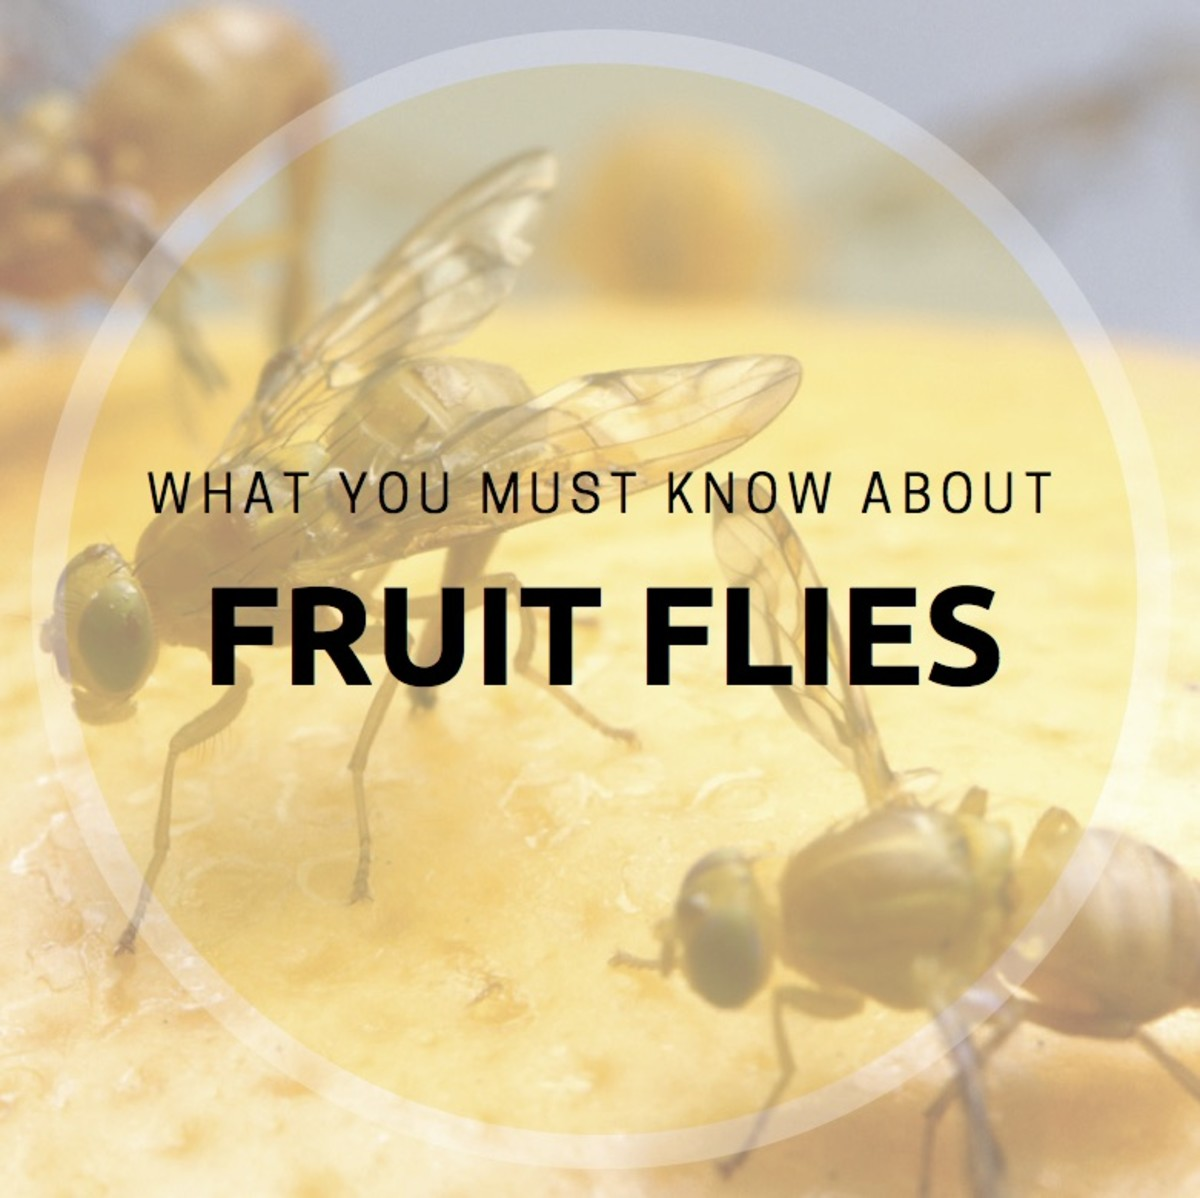 Do fruit flies carry diseases? Learn about fruit flies and how to deal with them in your kitchen.